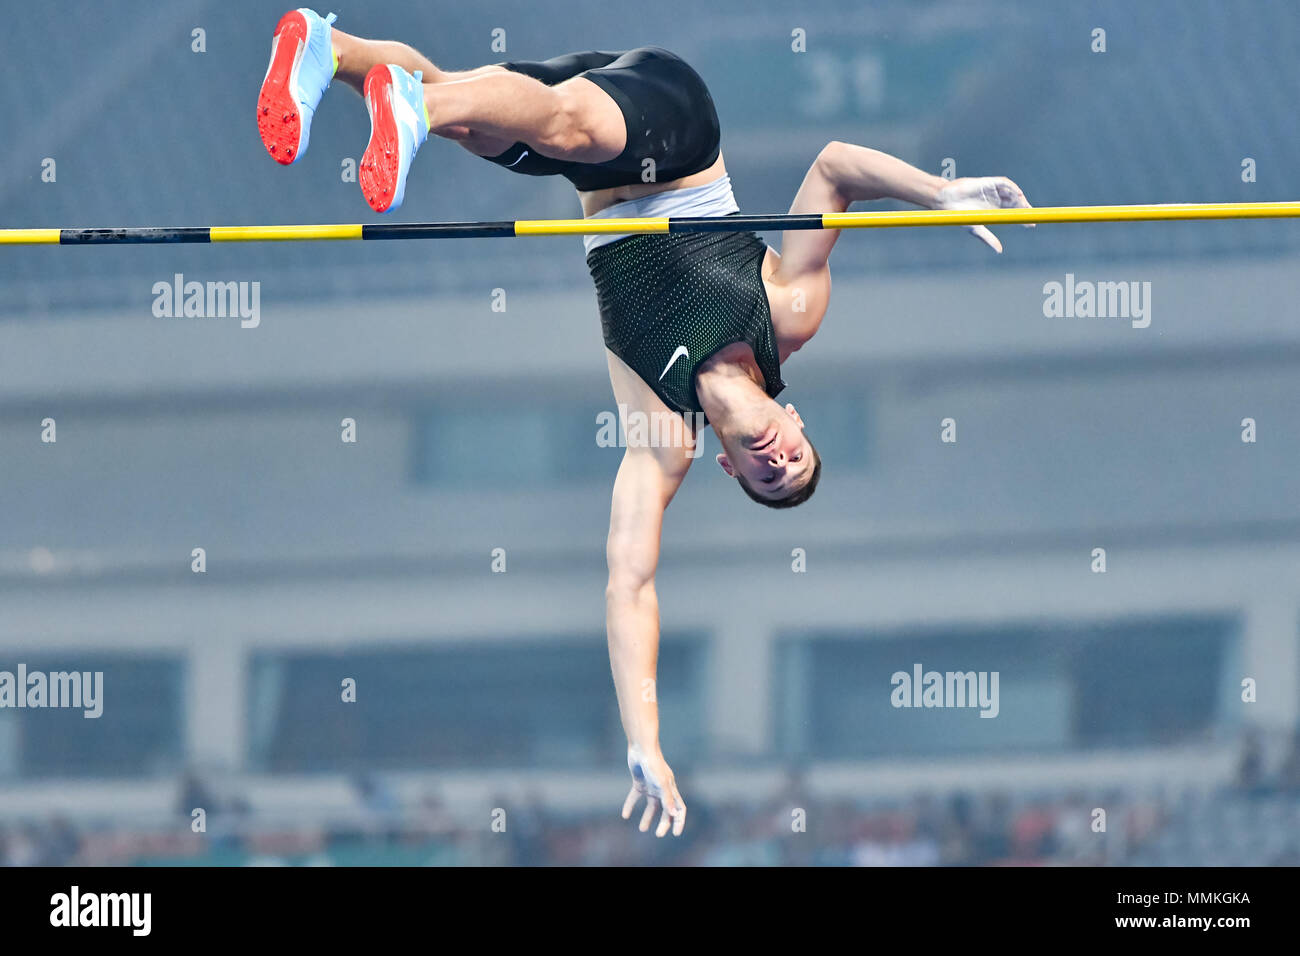 Shanghai, China. 12th May 2018. Pawel Wojciechowski (POL) in action during 2018 IAAF Shanghai Diamond League: MEN'S POLE VAULT at Shanghai Stadium on Saturday, 12 May 2018. SHANGHAI, CHINA. Credit: Taka G Wu Credit: Taka Wu/Alamy Live News - Stock Image